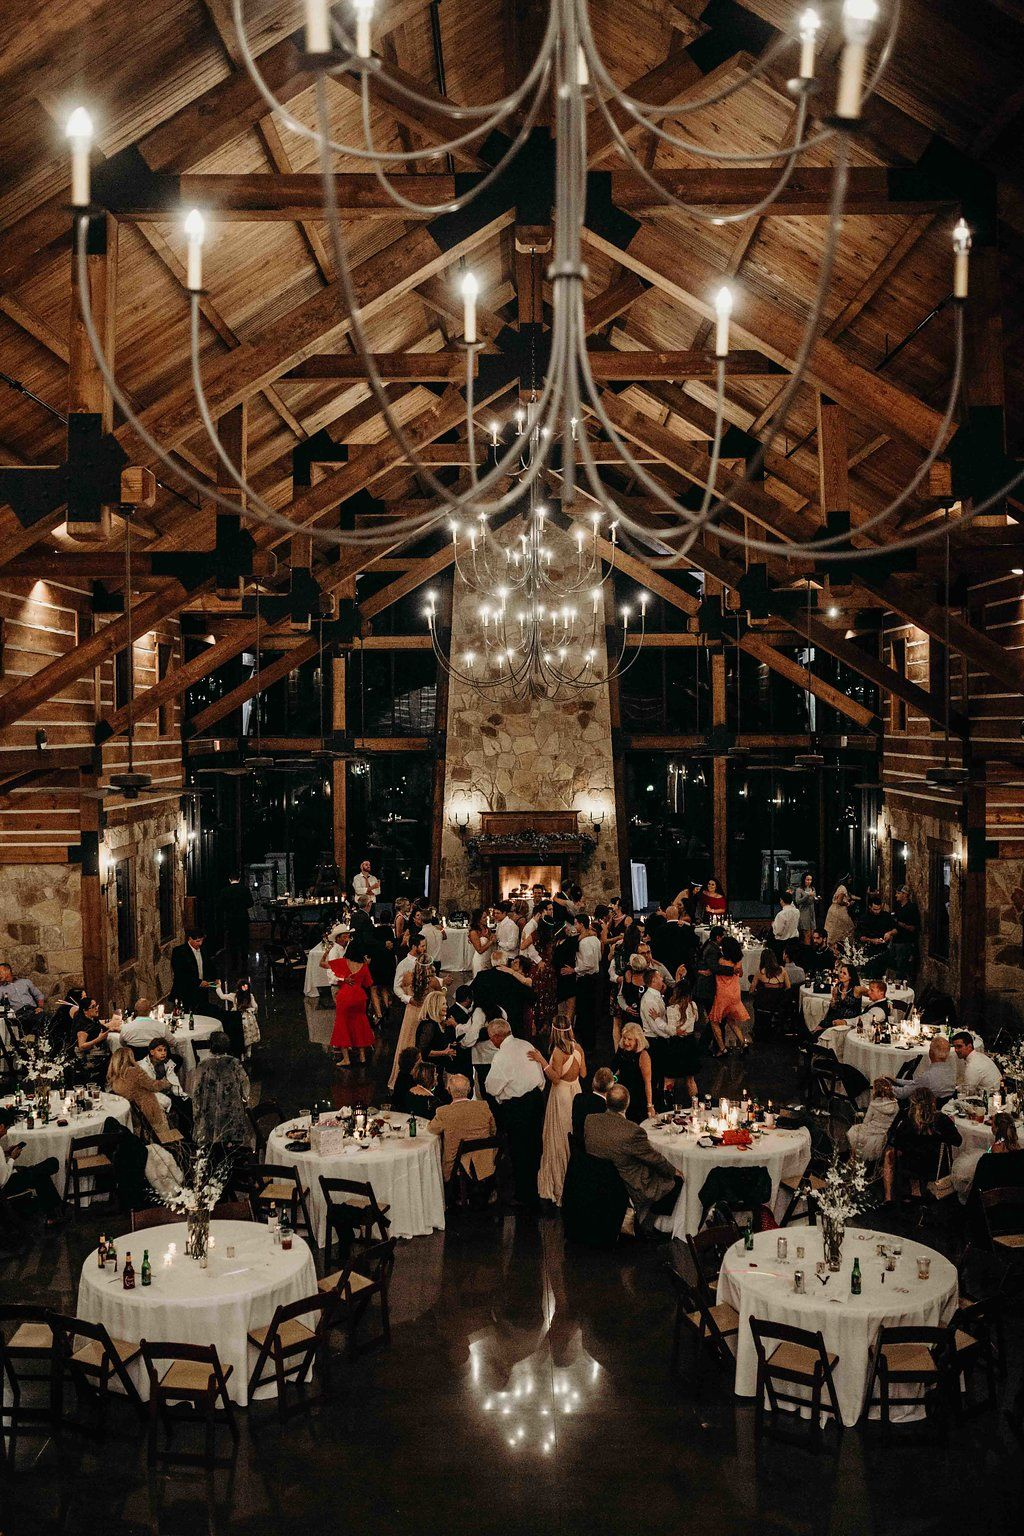 Lodge Dallas Wedding Venue Lodge Dfw Wedding Venue Winter Wedding Venues North Texas W Wedding Venues Texas Winter Wedding Venues Dallas Wedding Venues